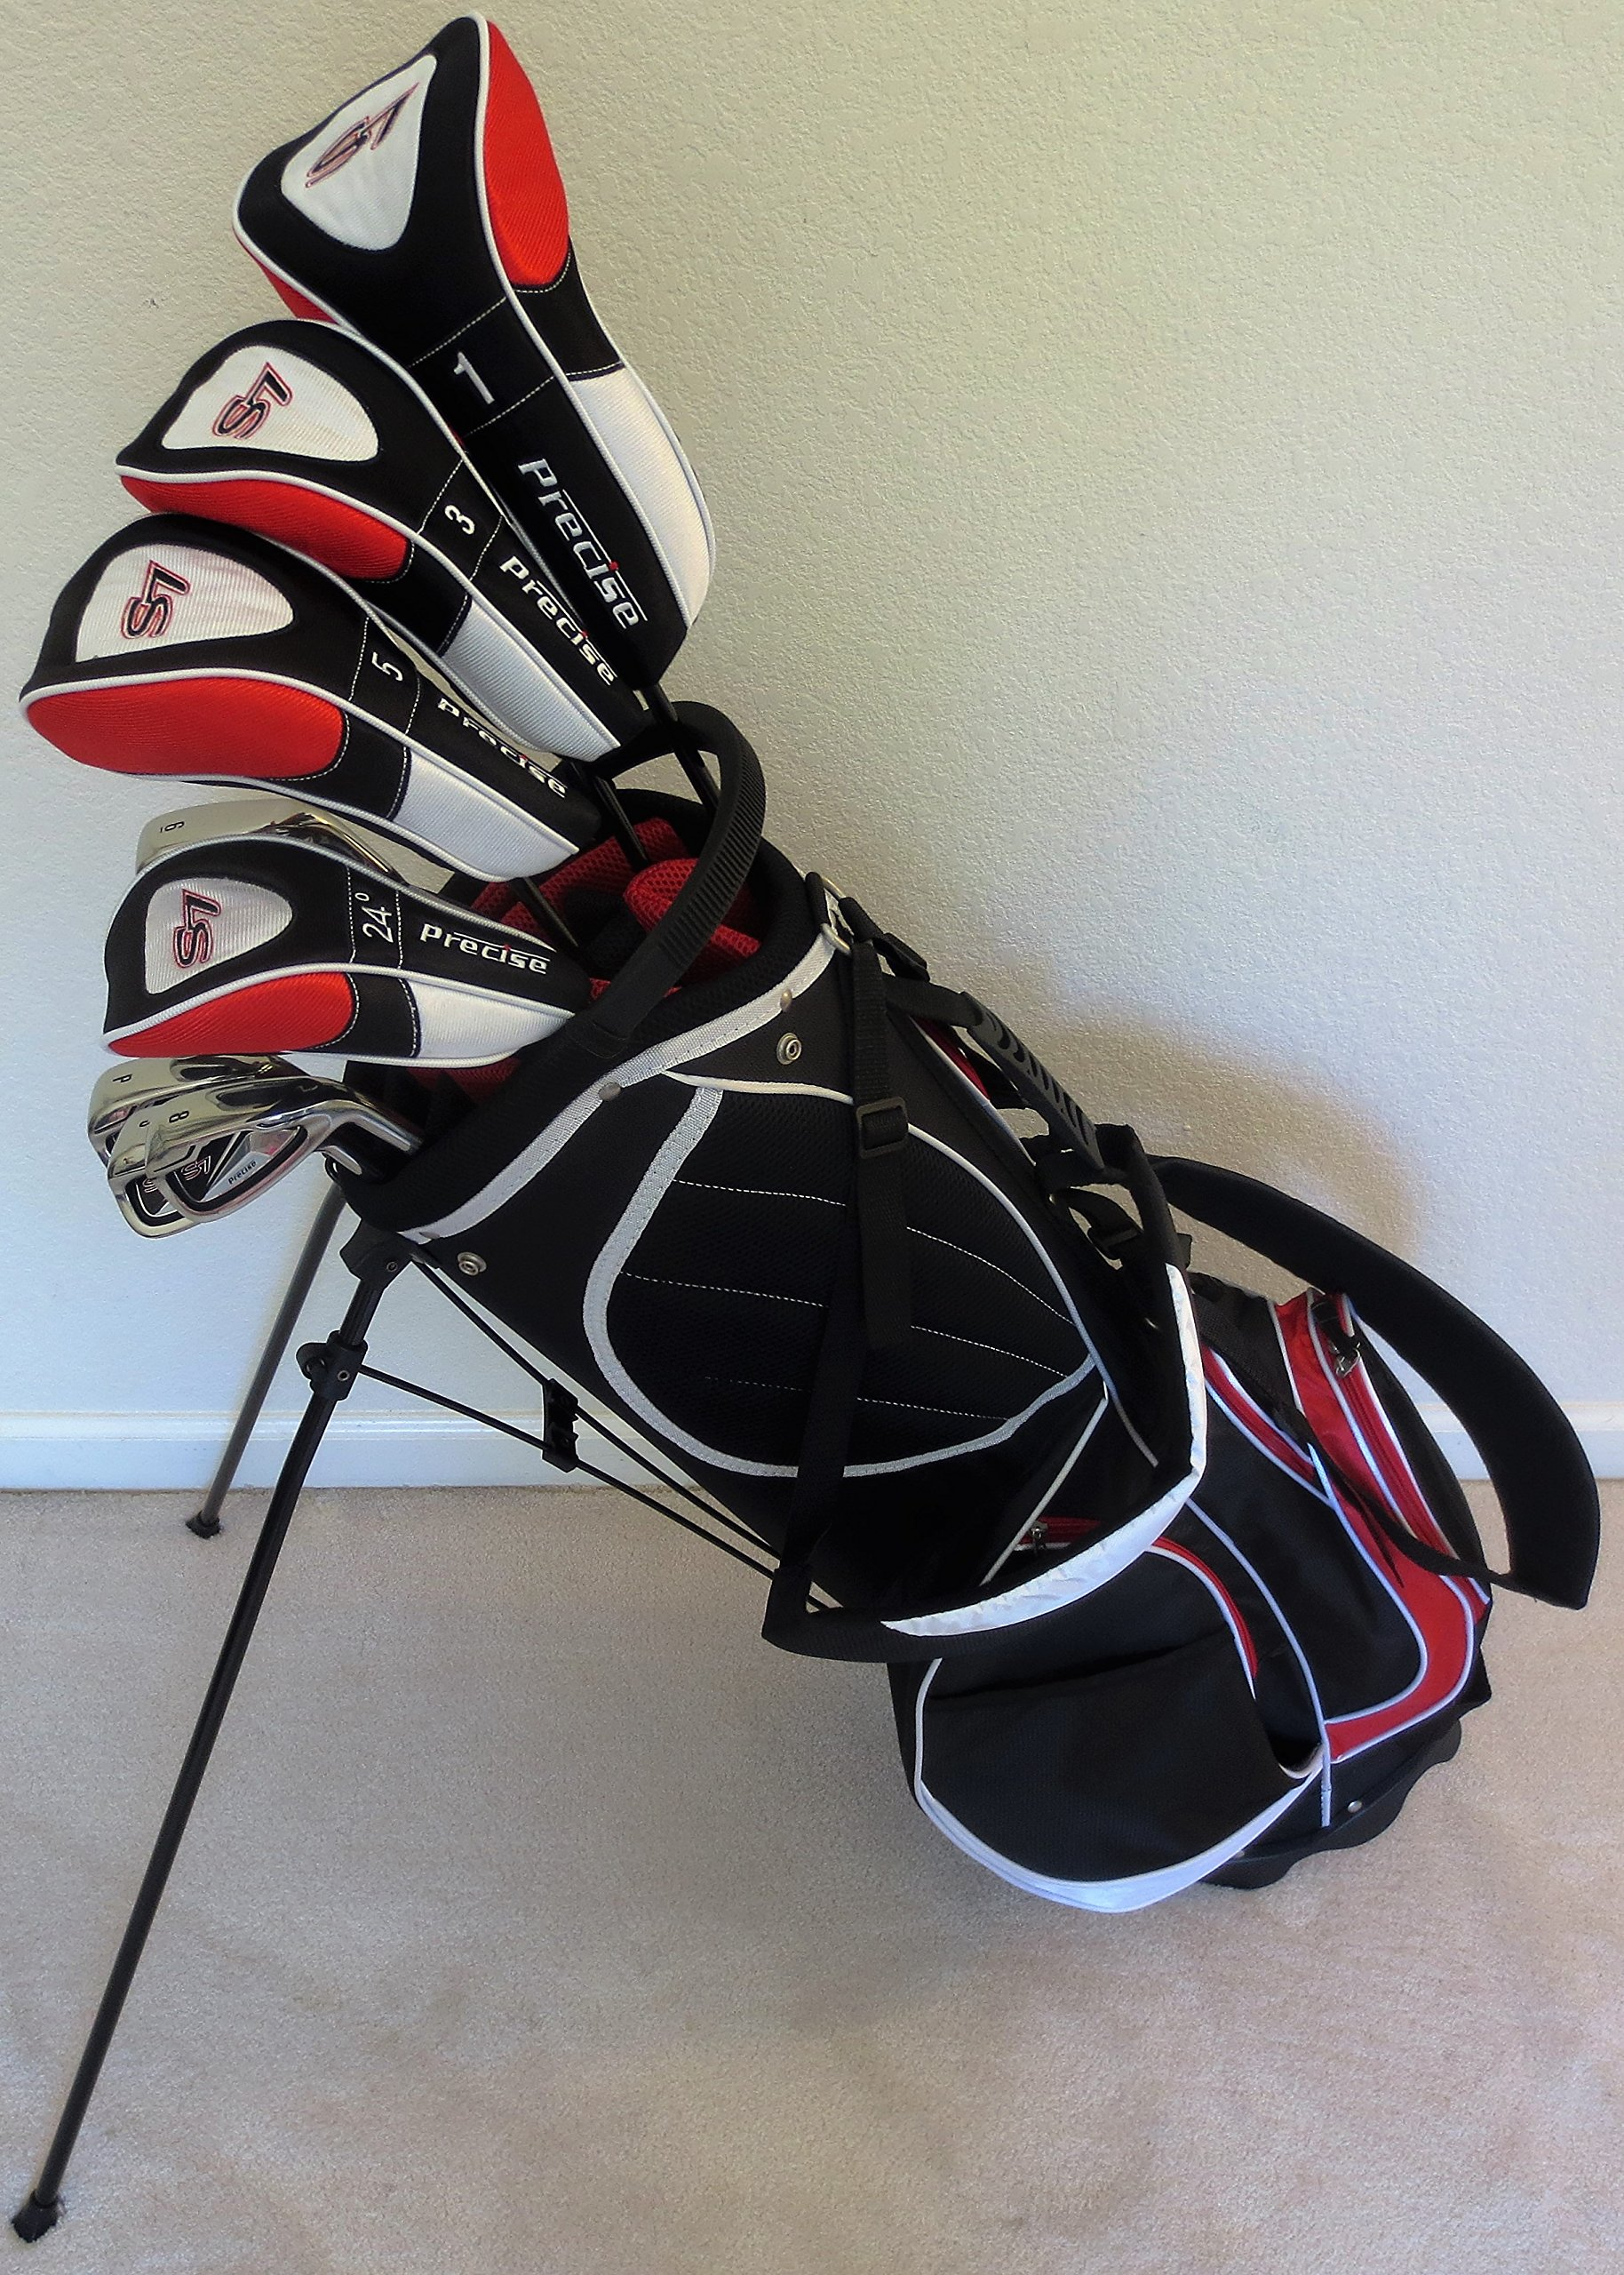 NEW Mens Complete Golf Set Custom Made Clubs for Tall Men 6'0''- 6'6'' Tall Right Handed Driver, Fairway Wood, Hybrid, Irons, Putter